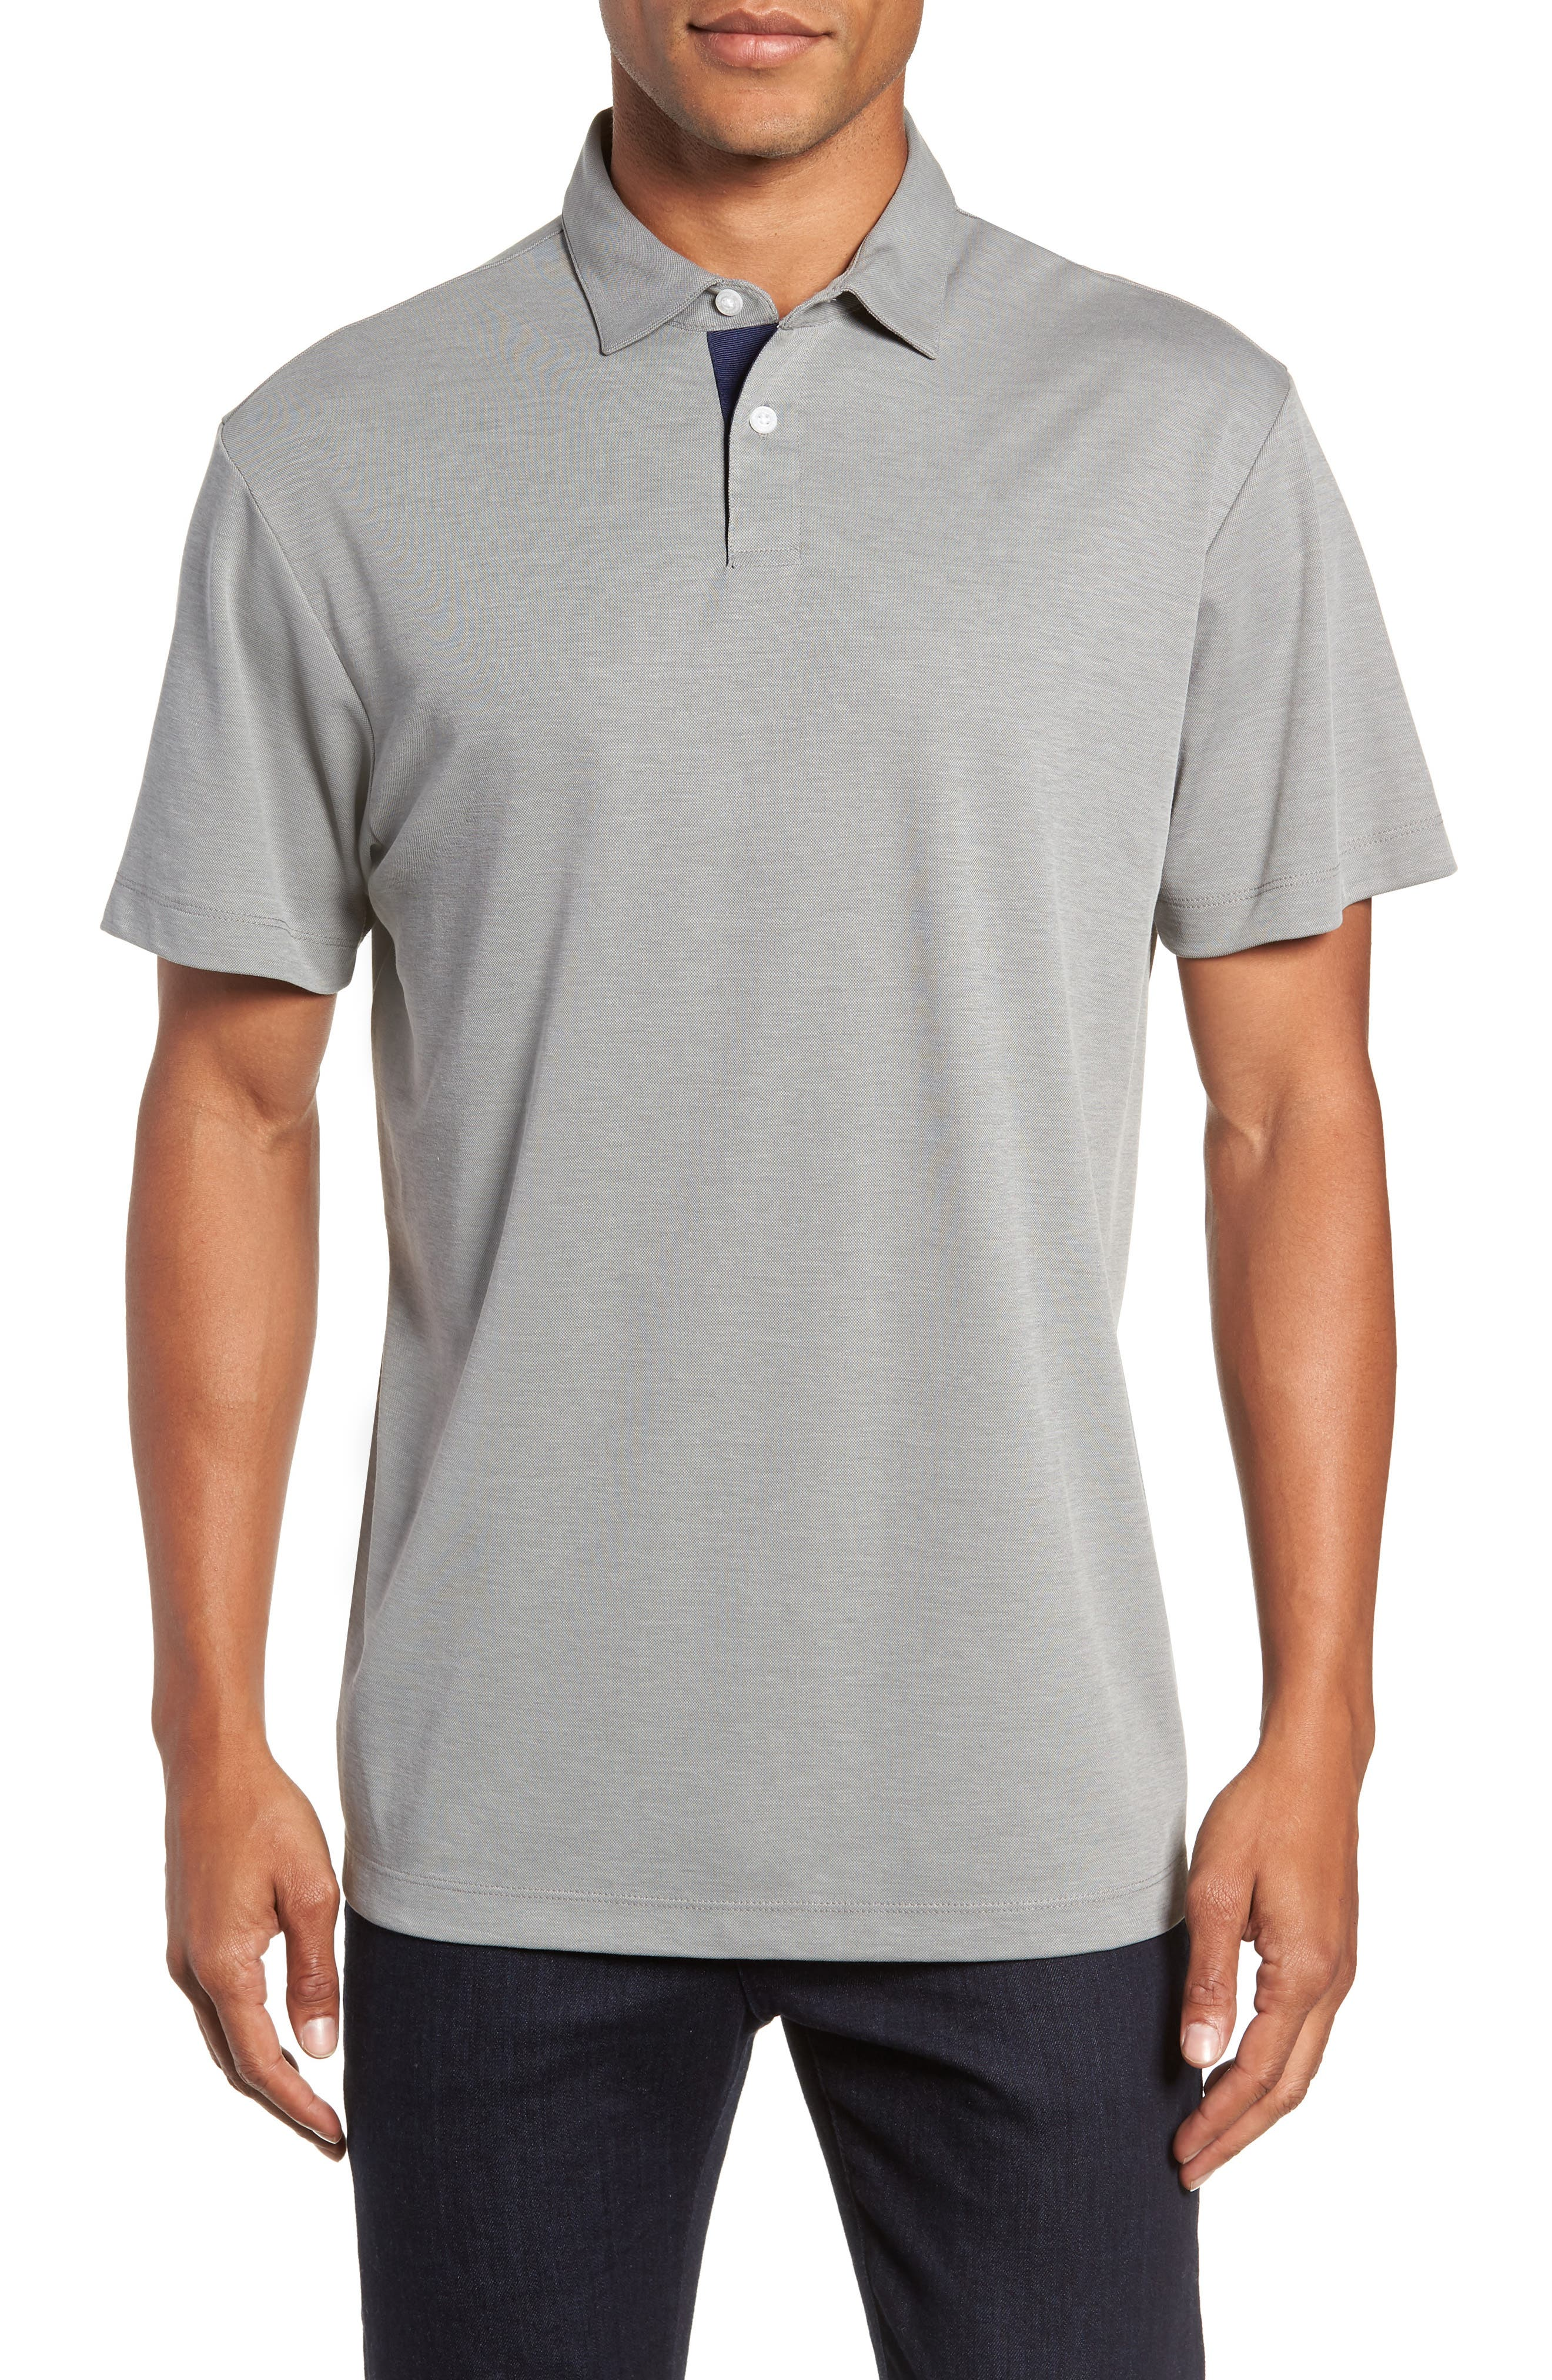 Andrew Regular Fit Piqué Polo,                             Main thumbnail 1, color,                             STONE